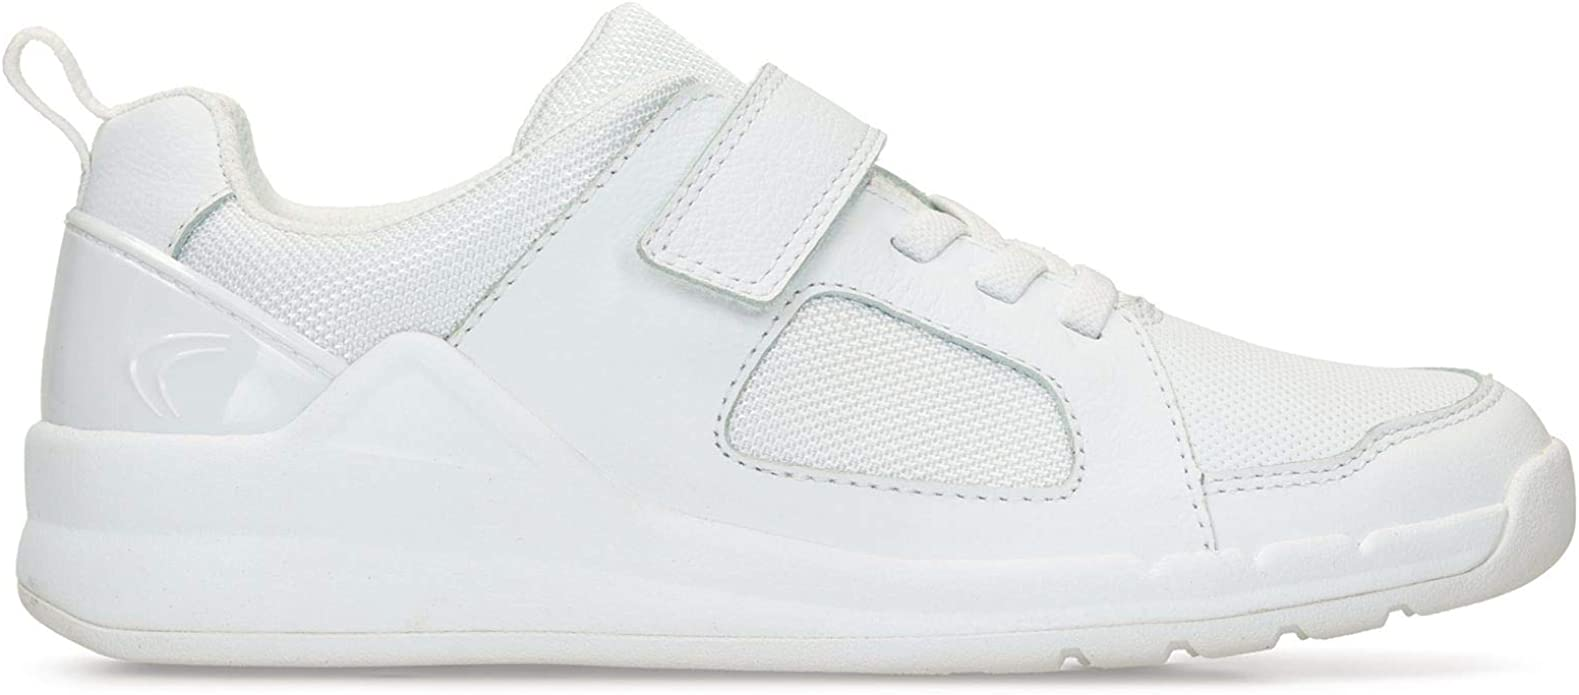 Clarks Orbit Ride Leather Trainers in